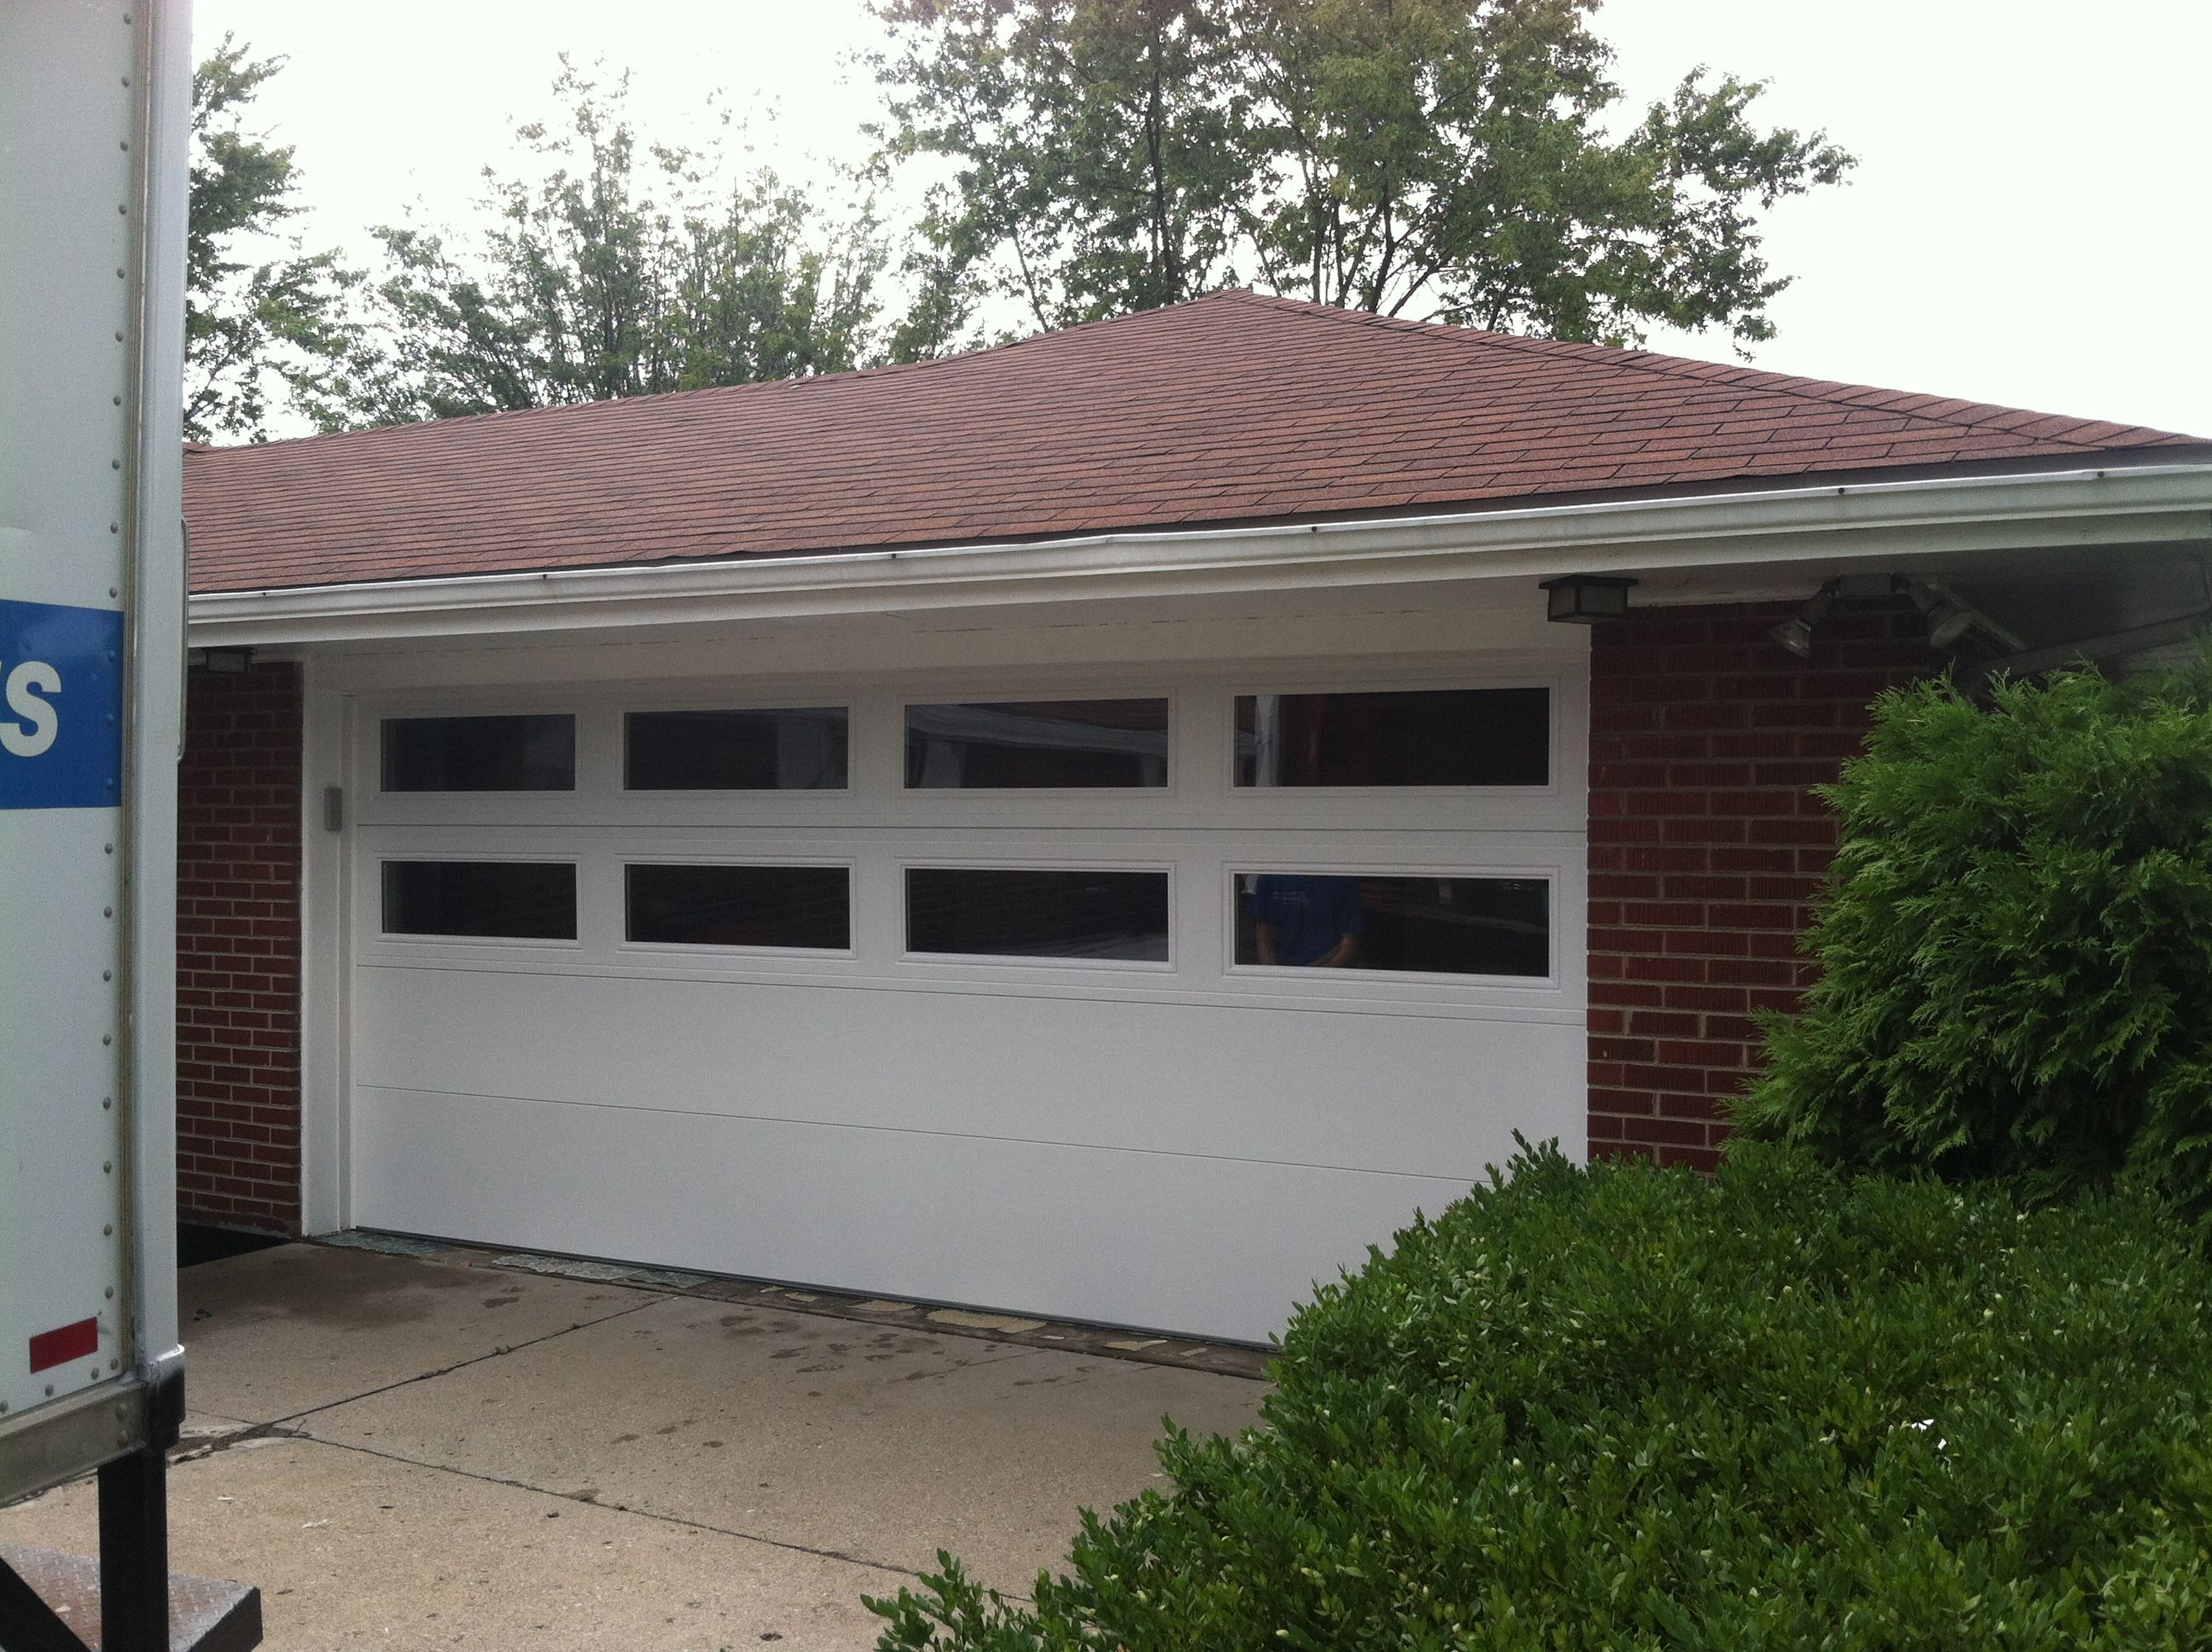 New Hormann Sandwich Steel Insulated Garage Door With 2 Rows Of Insulated Glass To Let Tons Of Light Into T Garage Door Insulation Garage Doors Garage Makeover